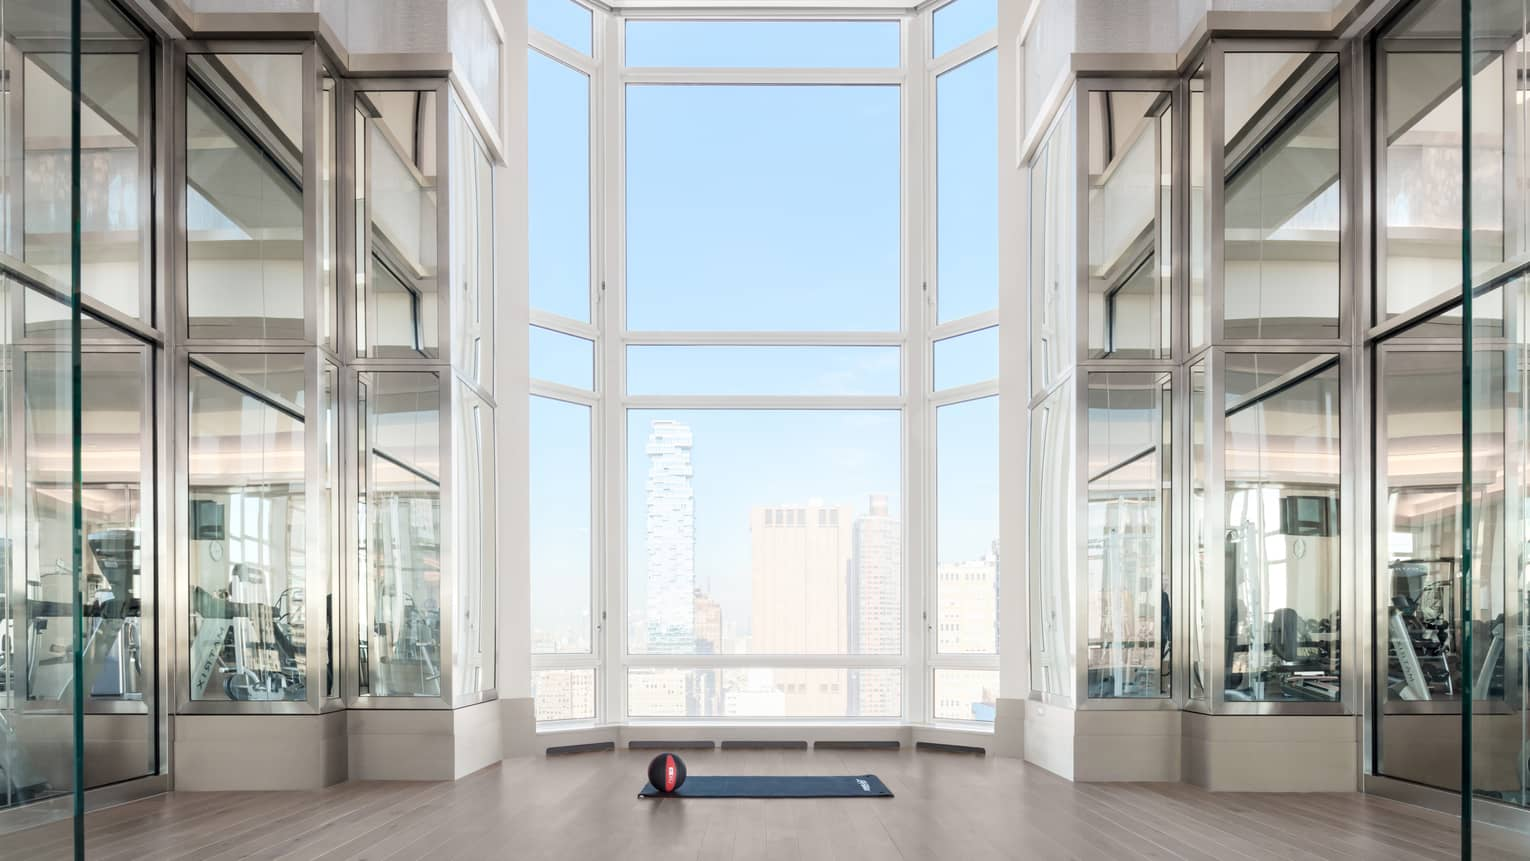 Basketball sits on yoga mat under soaring windows in modern Residential Fitness Centre overlooking Manhattan